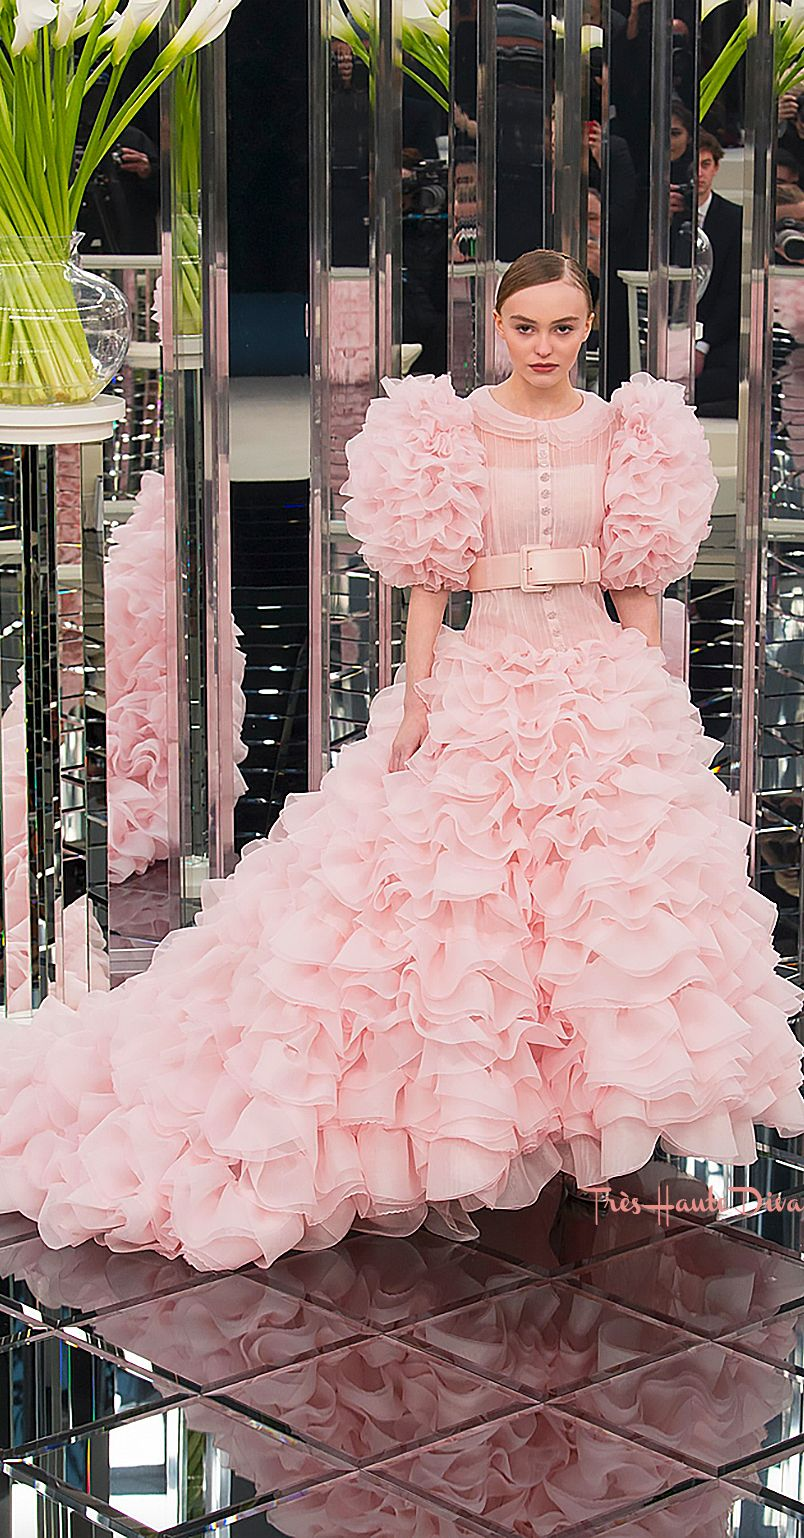 Chanel Spring 2017 Couture - Tres Haute Diva | Chanel | Pinterest ...